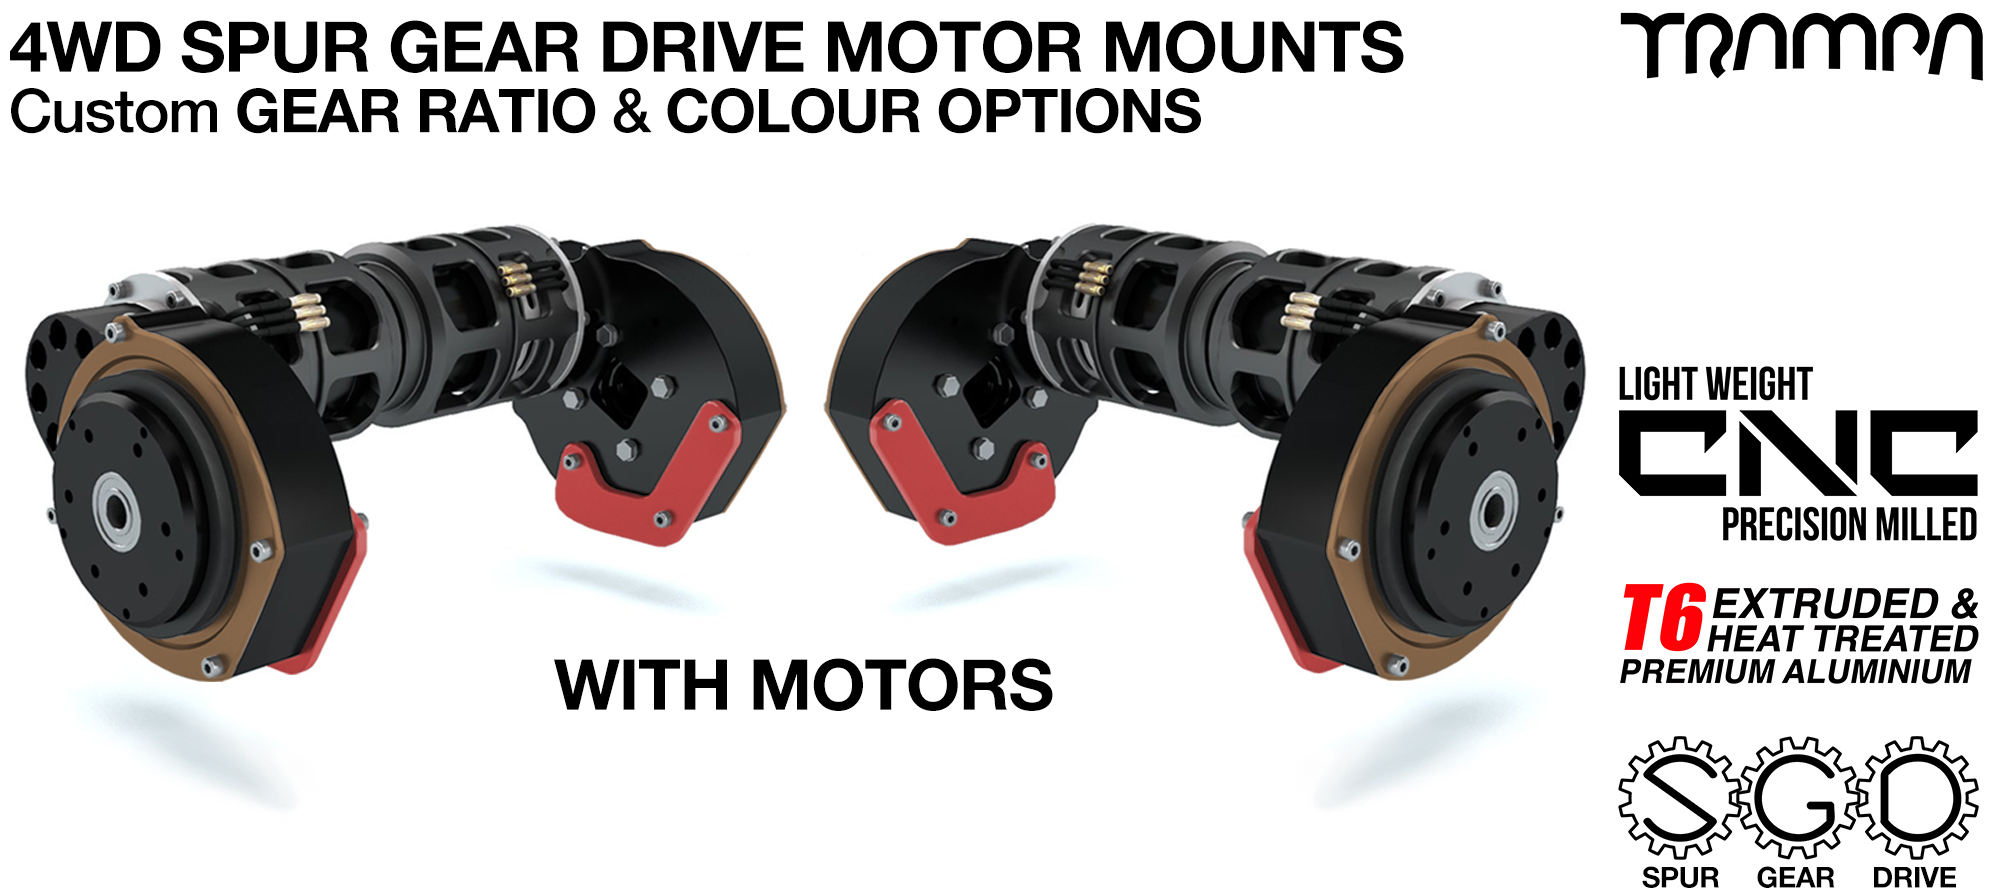 Mountainboard Spur Gear Drive QUAD Motor Mounts with CUSTOM Motors- 4WD